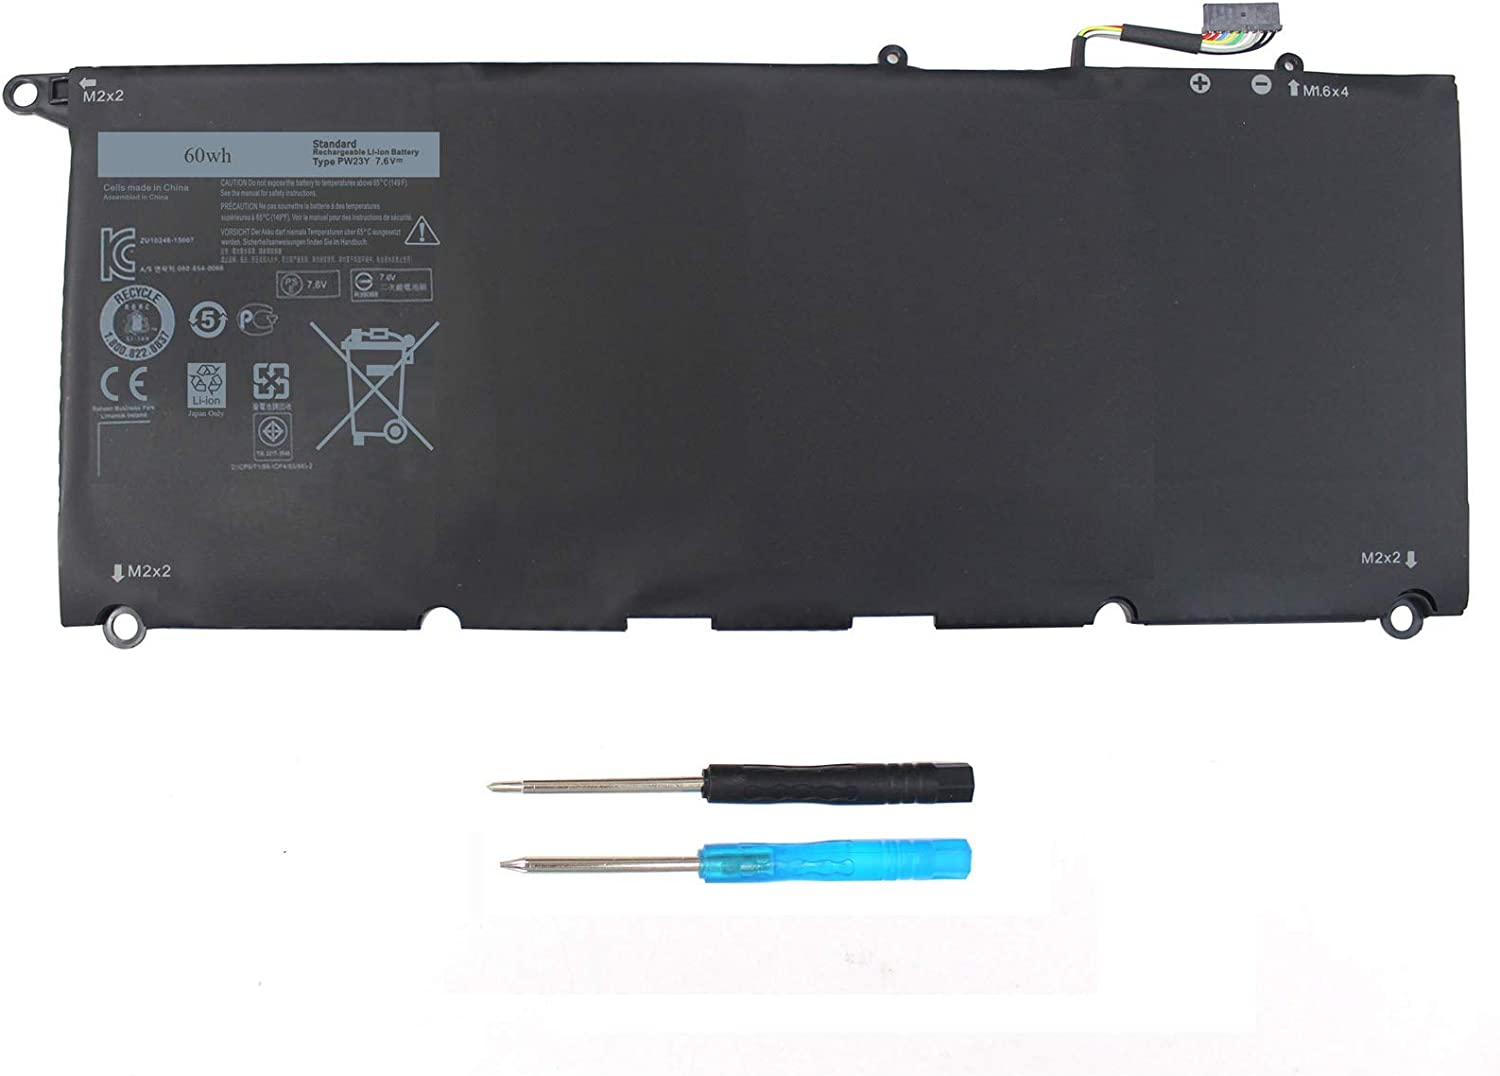 PW23Y Laptop Battery Compatible with Dell XPS 13 9360 P54G002 13-9360-D1505G 13-9360-D1605G 13-9360-D1605T 13-9360-D1609 13-9360-D1609G 13-9360-D1705G XPS 13 2017 Series TP1GT RNP72 0RNP72 0TP1GT